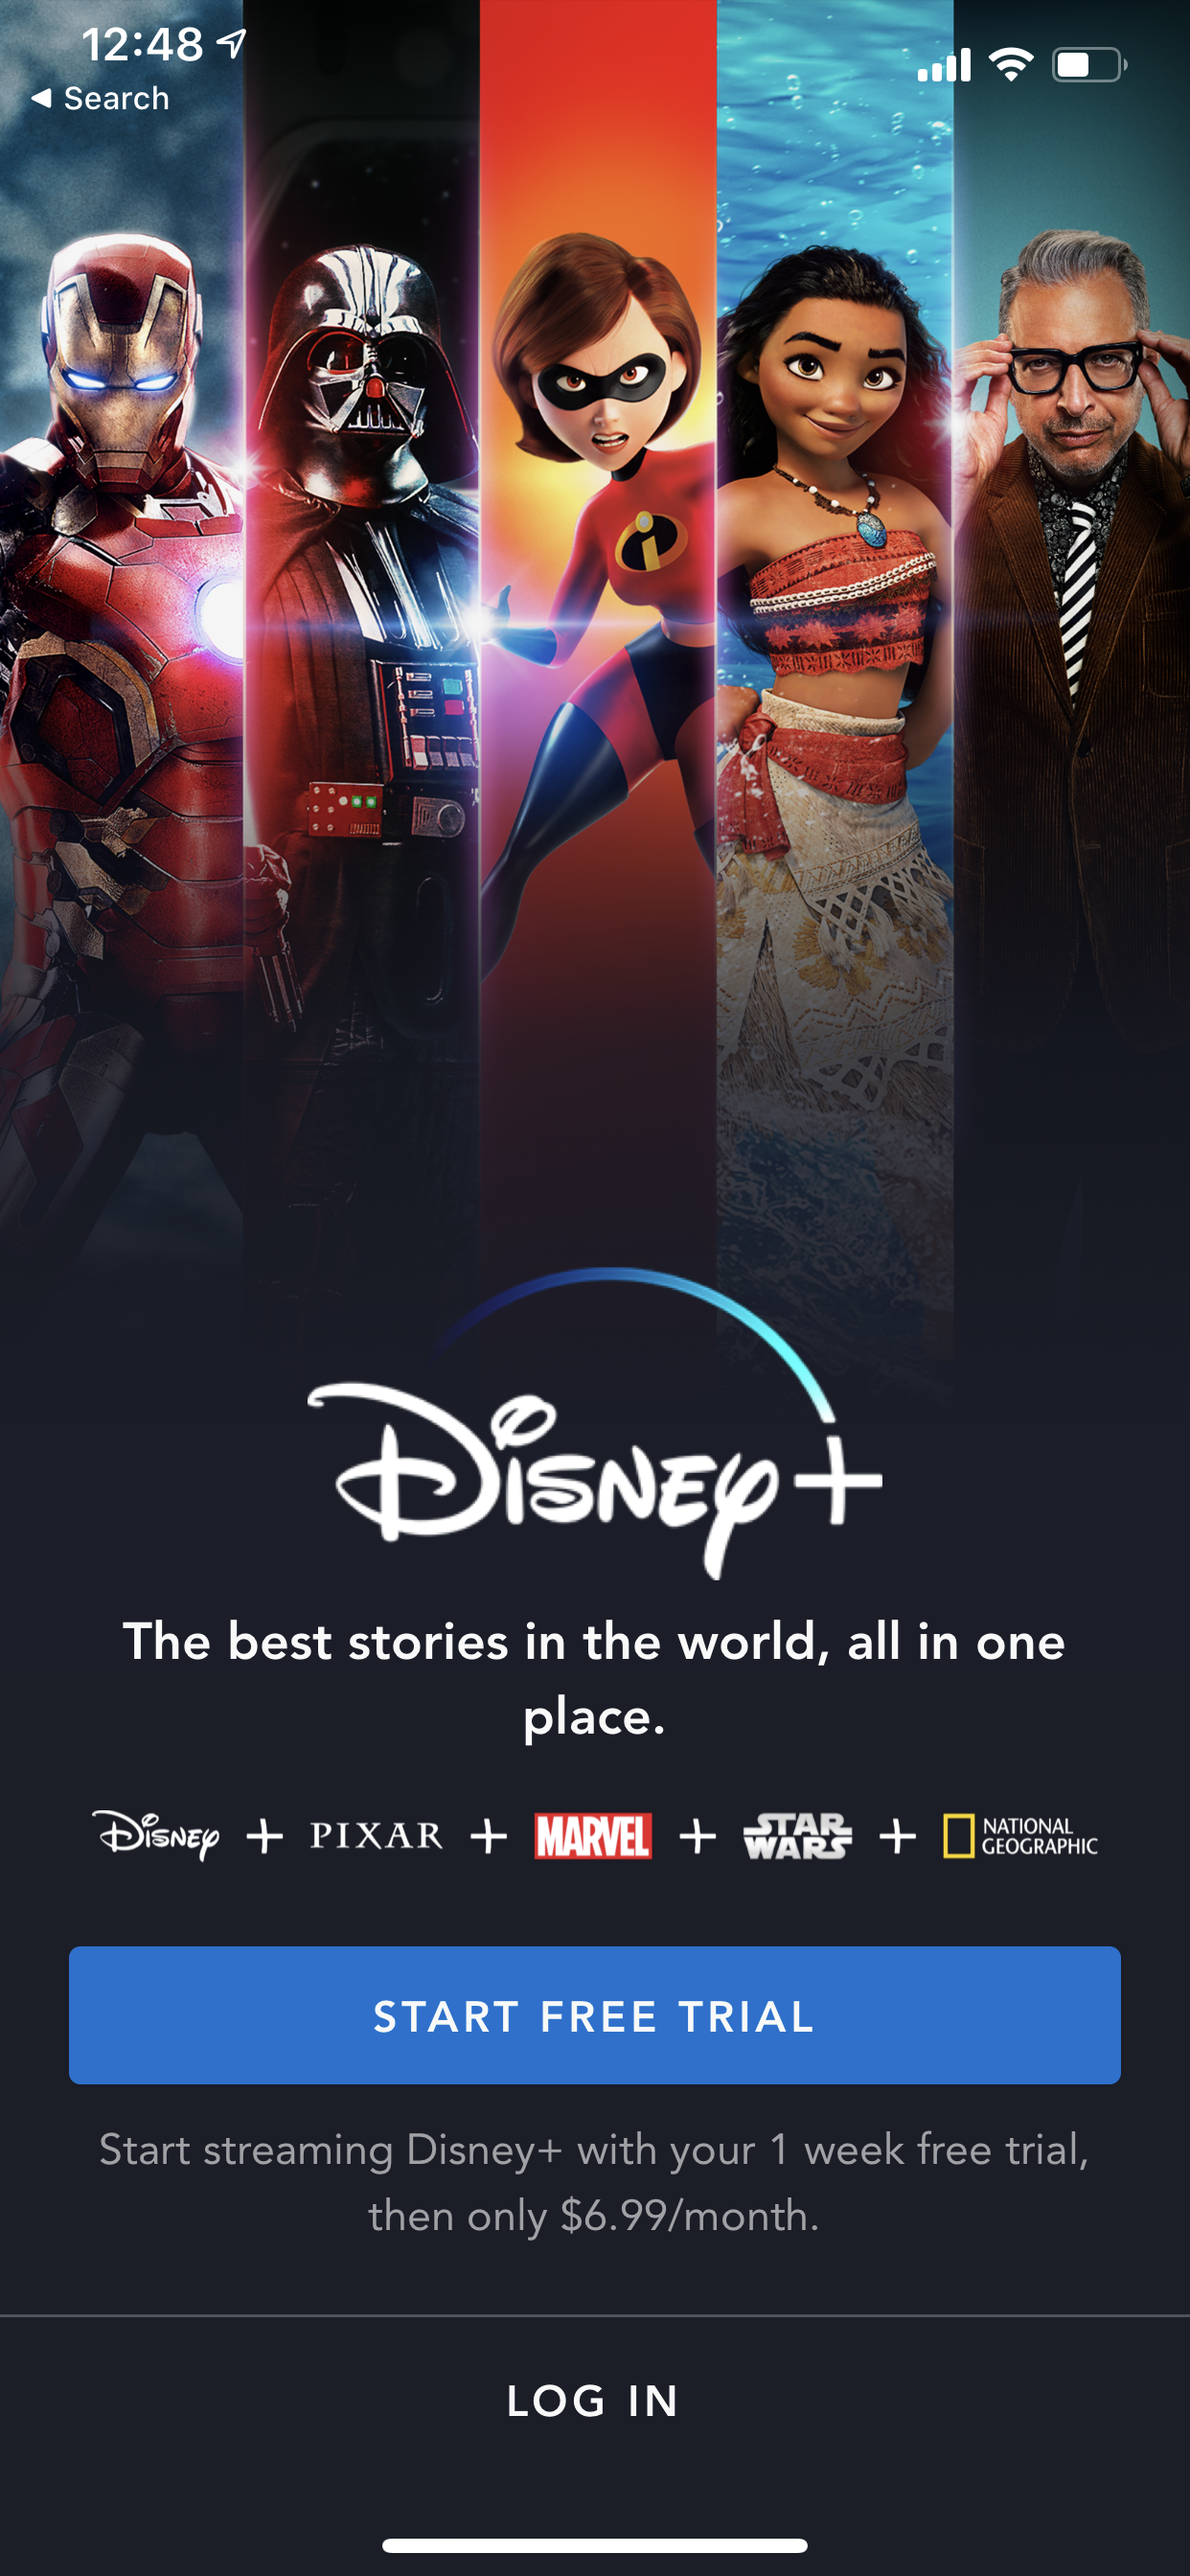 Example of App Design for iOS with the following features: onboarding, signup ~ login, upgrade, text button, background image. App by DisneyPlus (iPhone X)